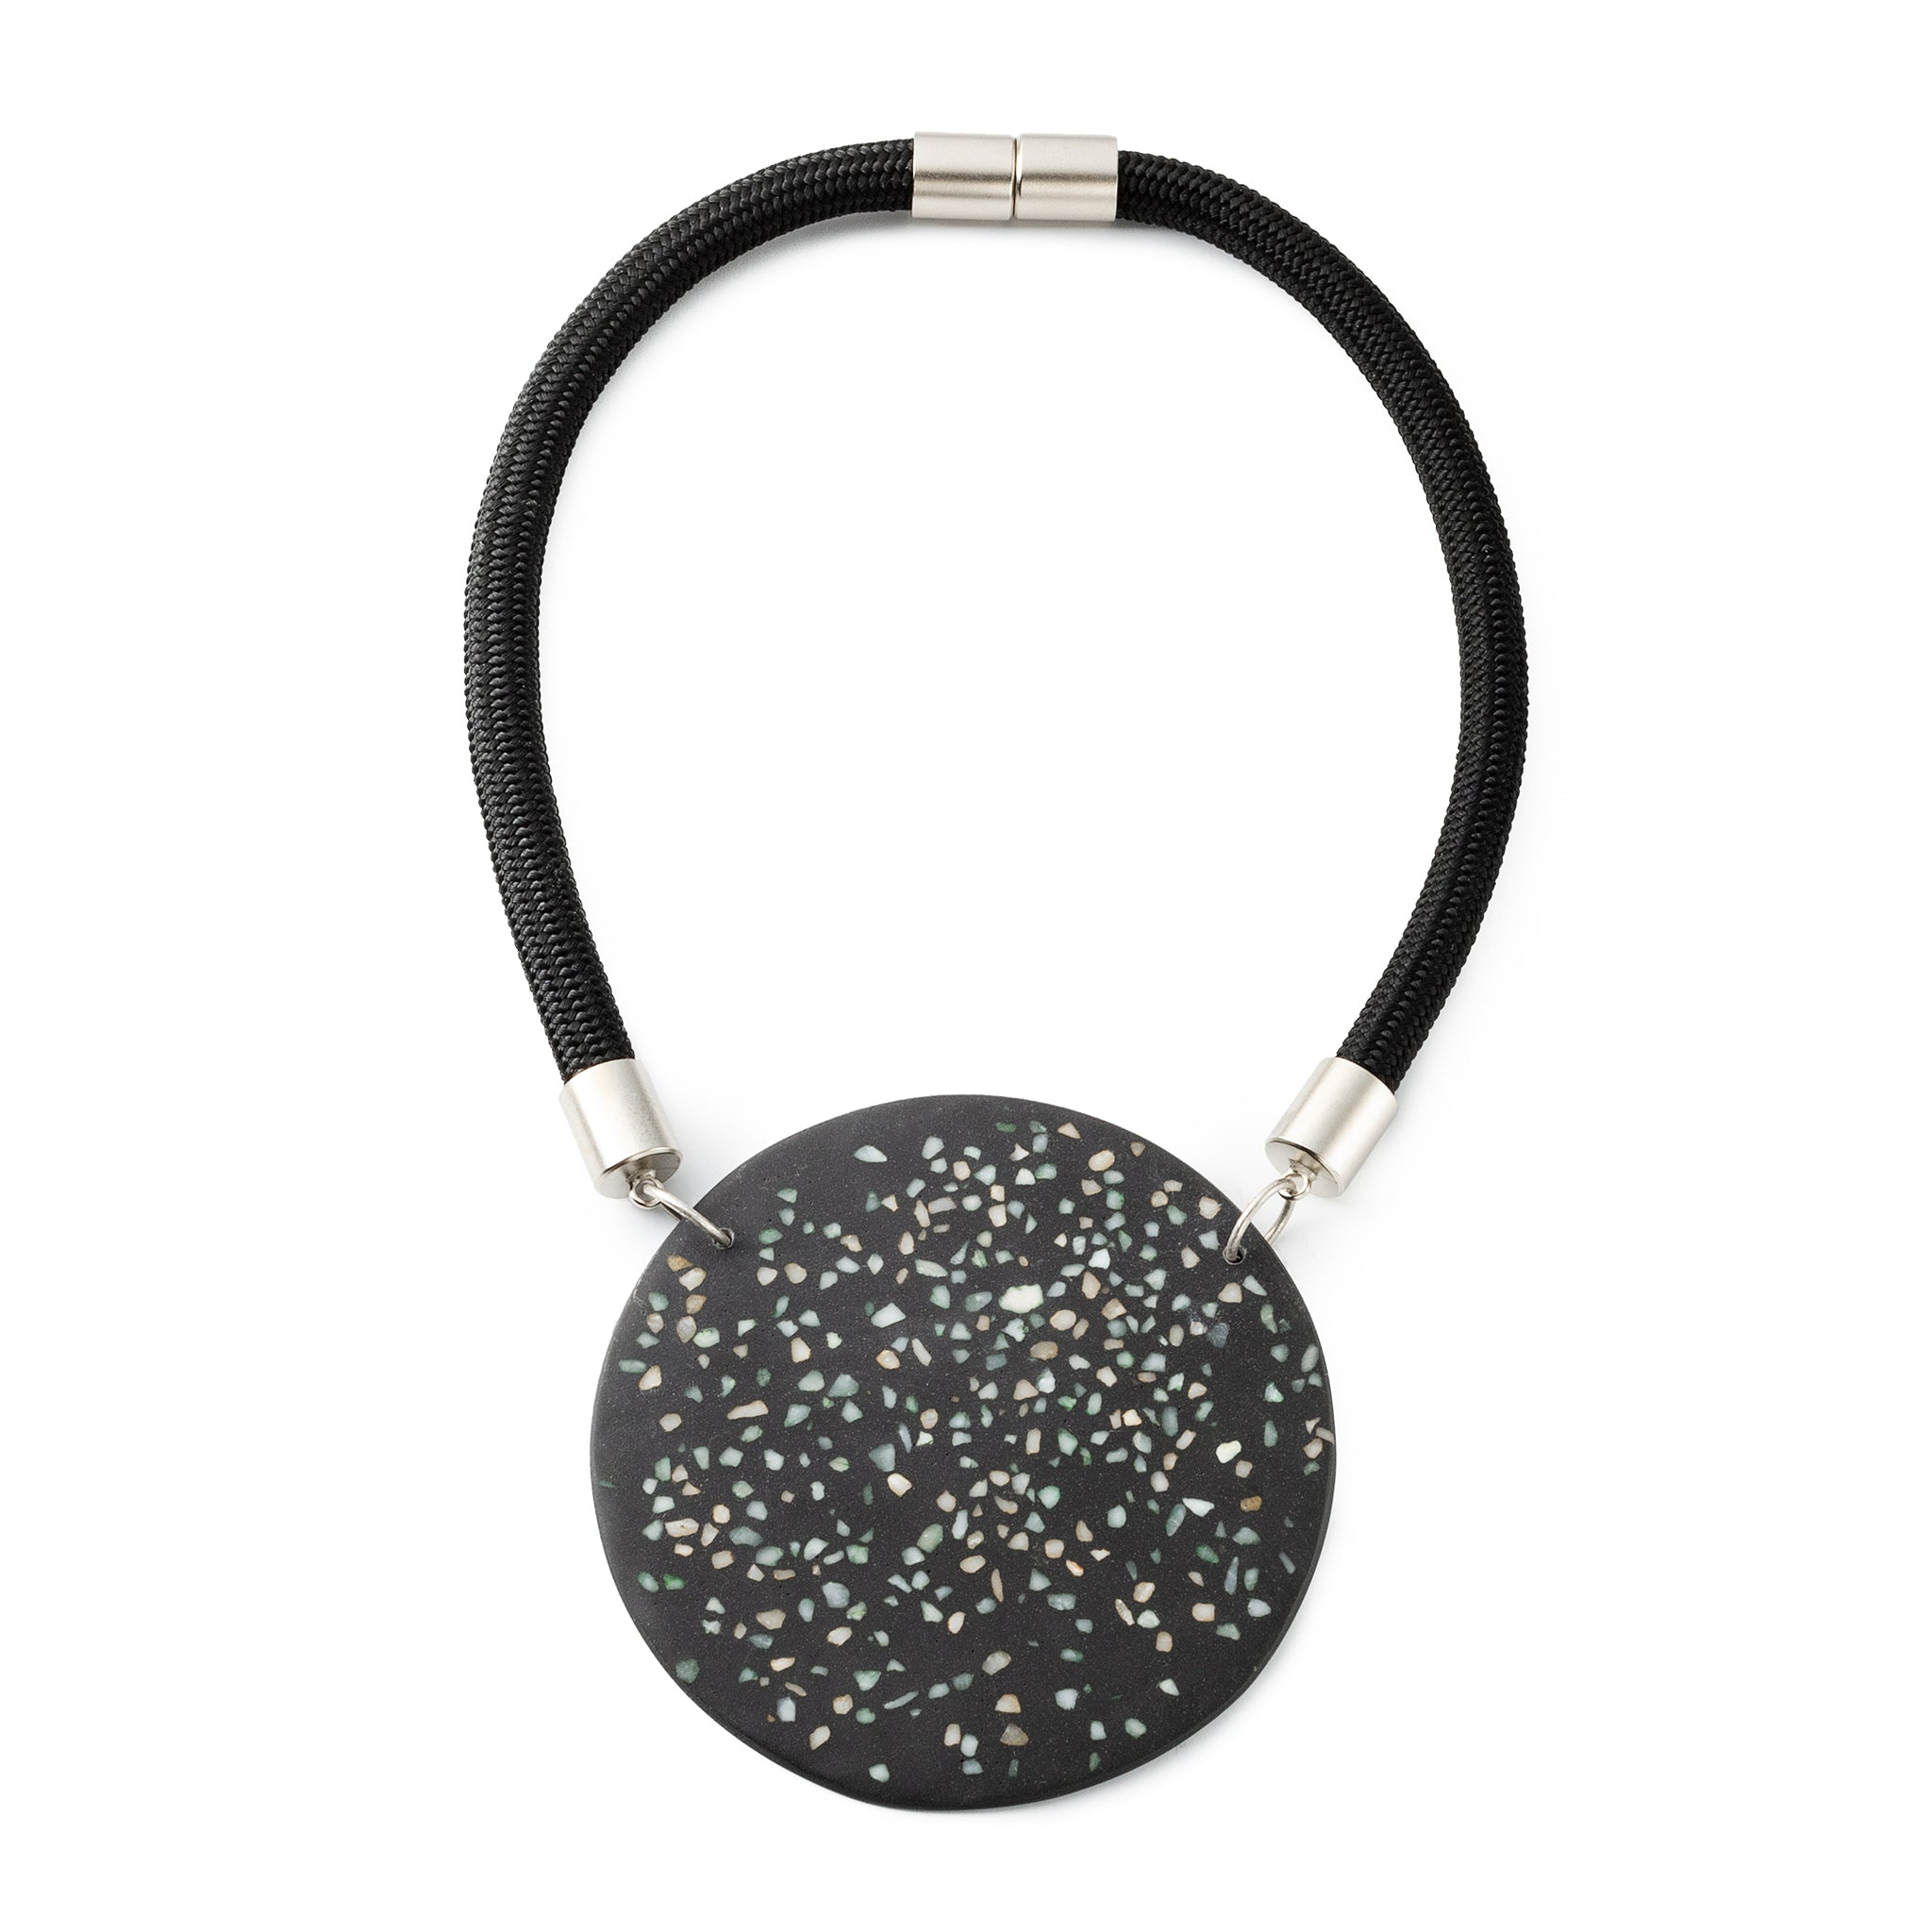 BAAKO / minimalist statement knitted necklace / Black White – Gily Ilan | Fashion accessories and Gifts